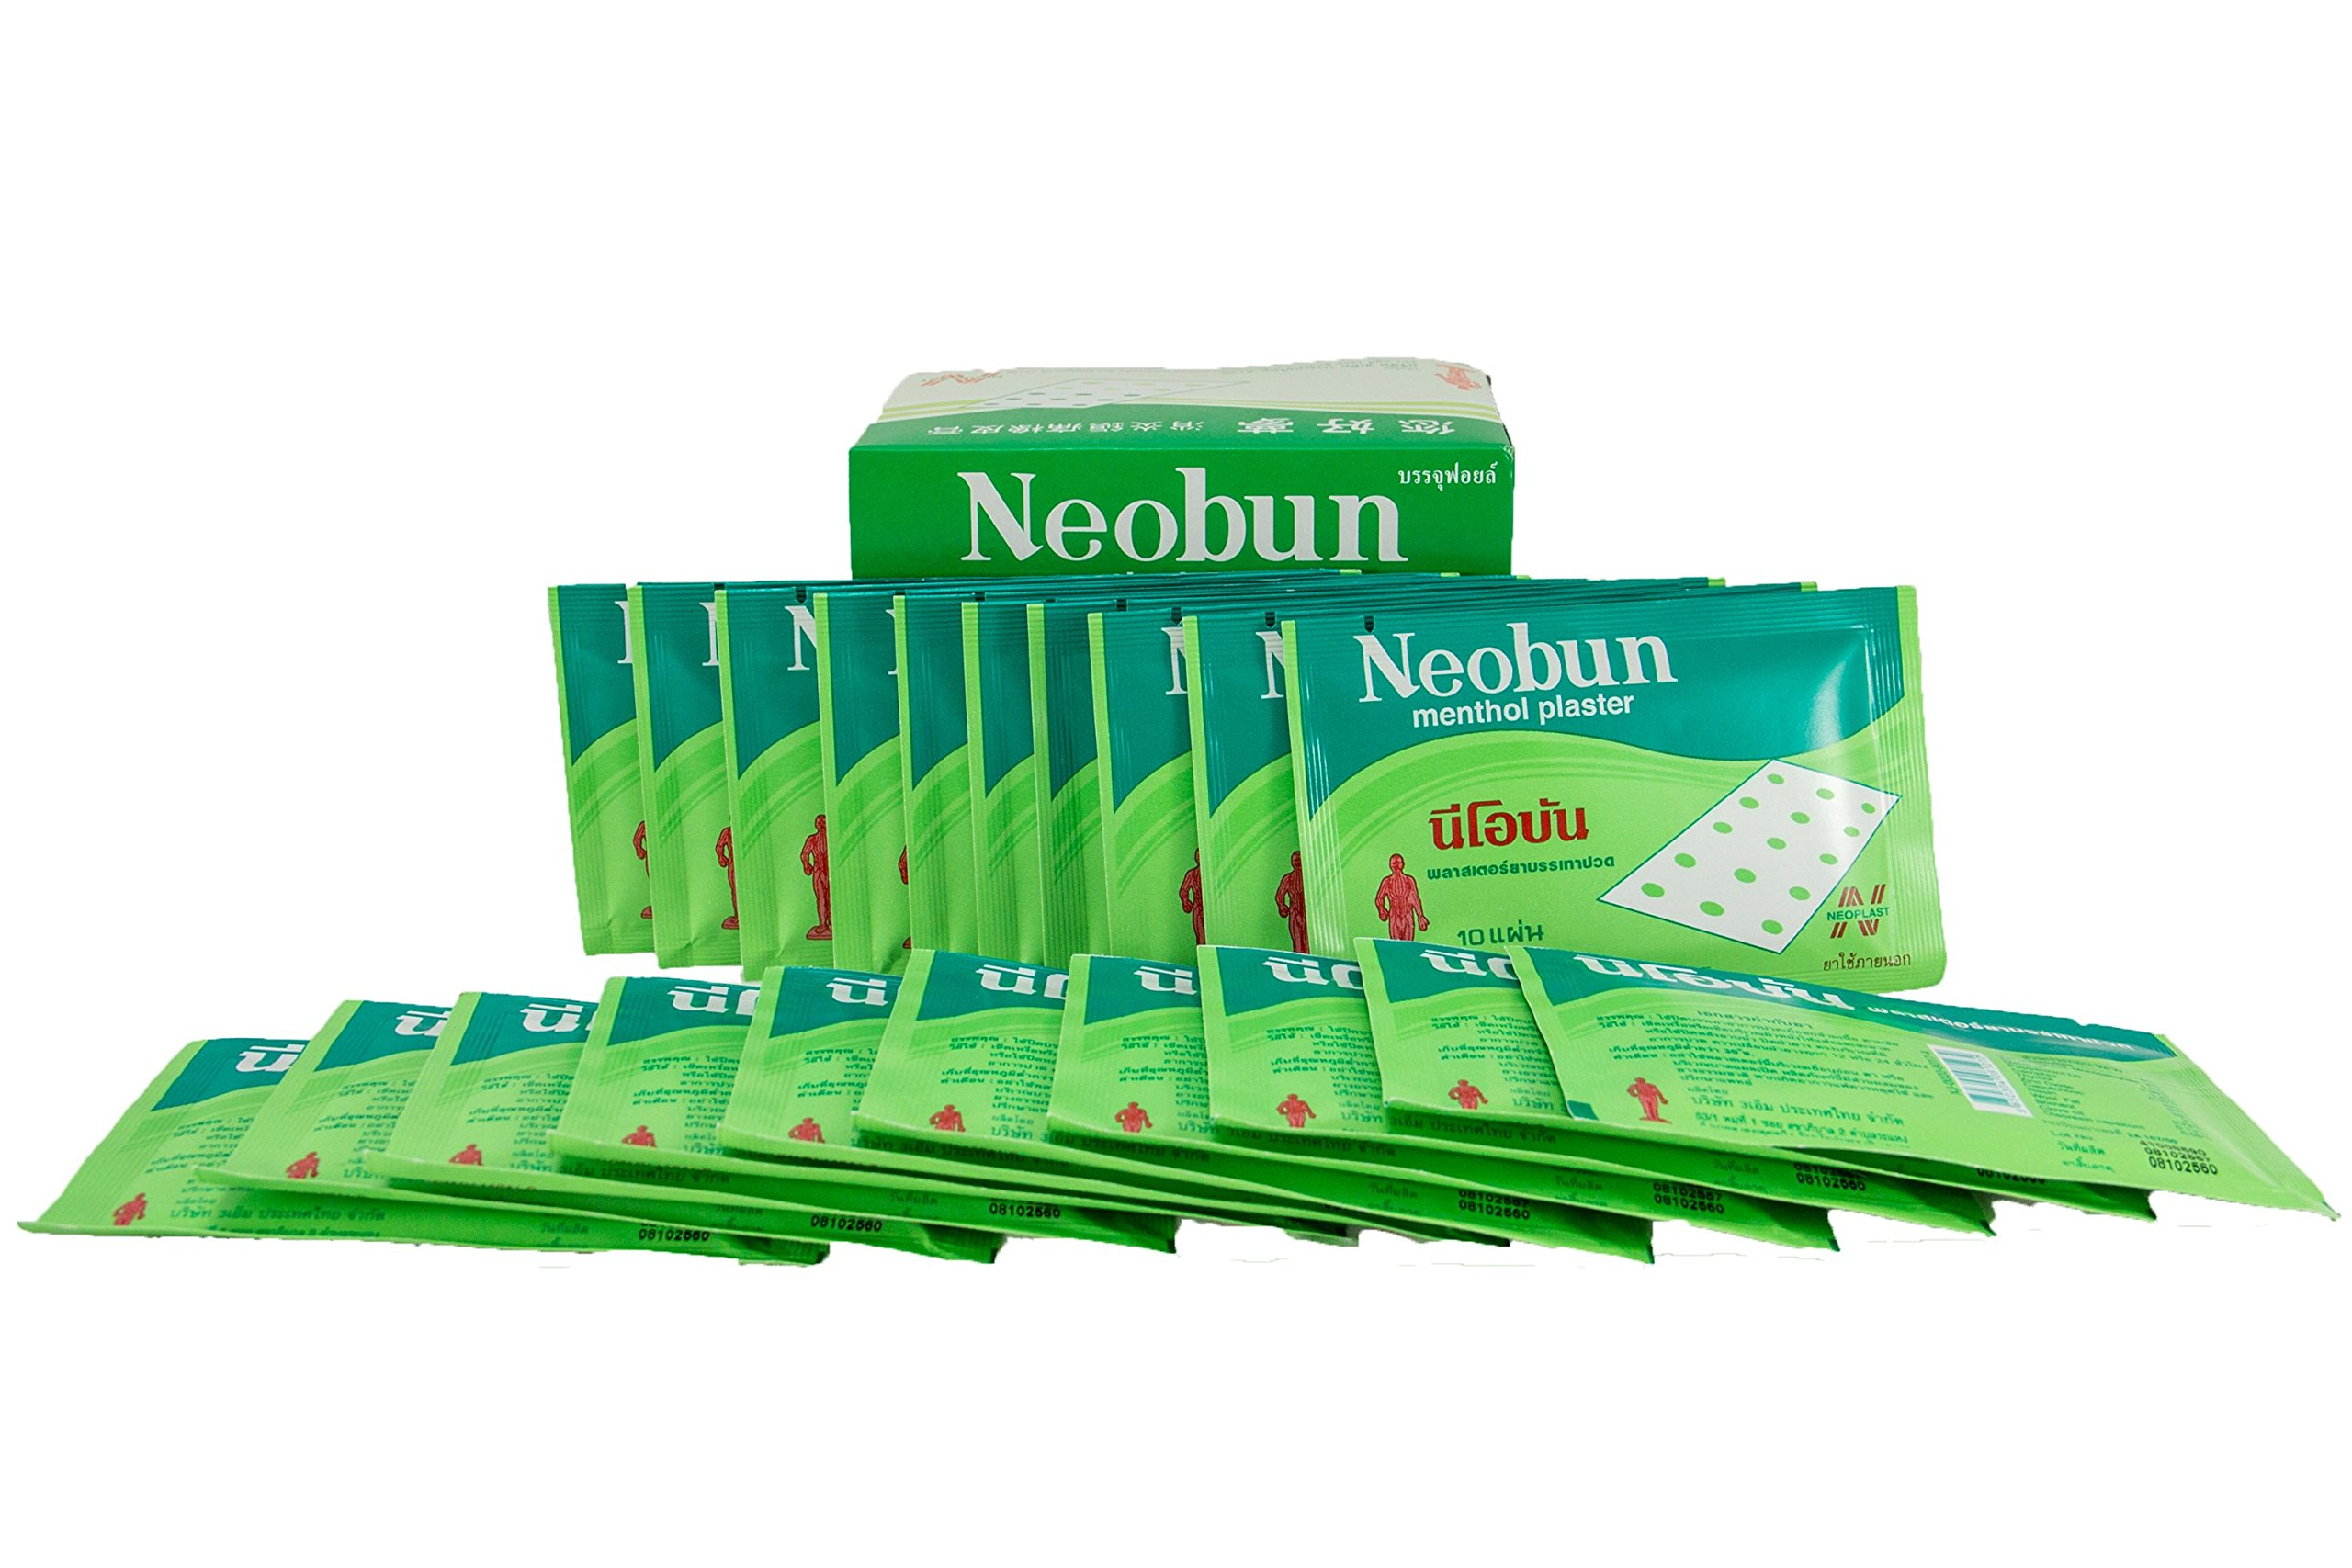 Neobun Menthol Plaster Relief Back Body Joint Muscle Pain Ache by 3M [20 Plasters]